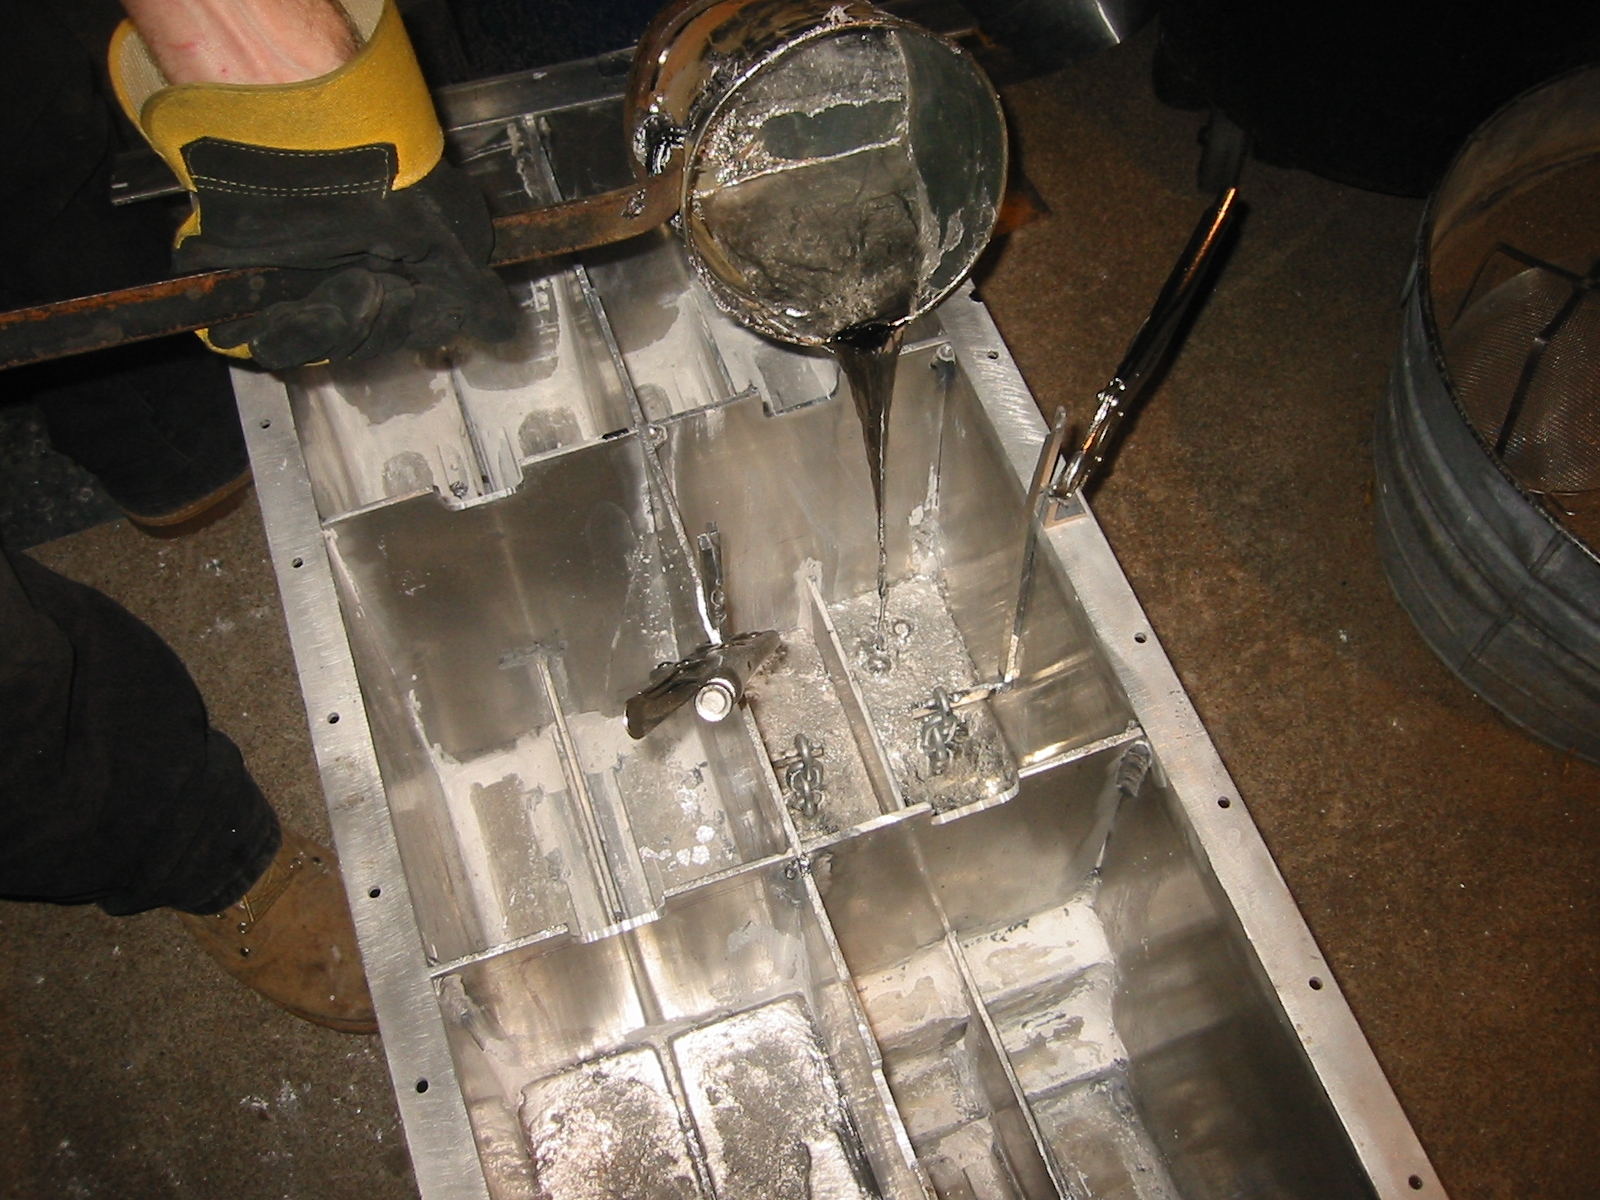 (3) Pouring molten lead into the lower compartments of theballast sled.